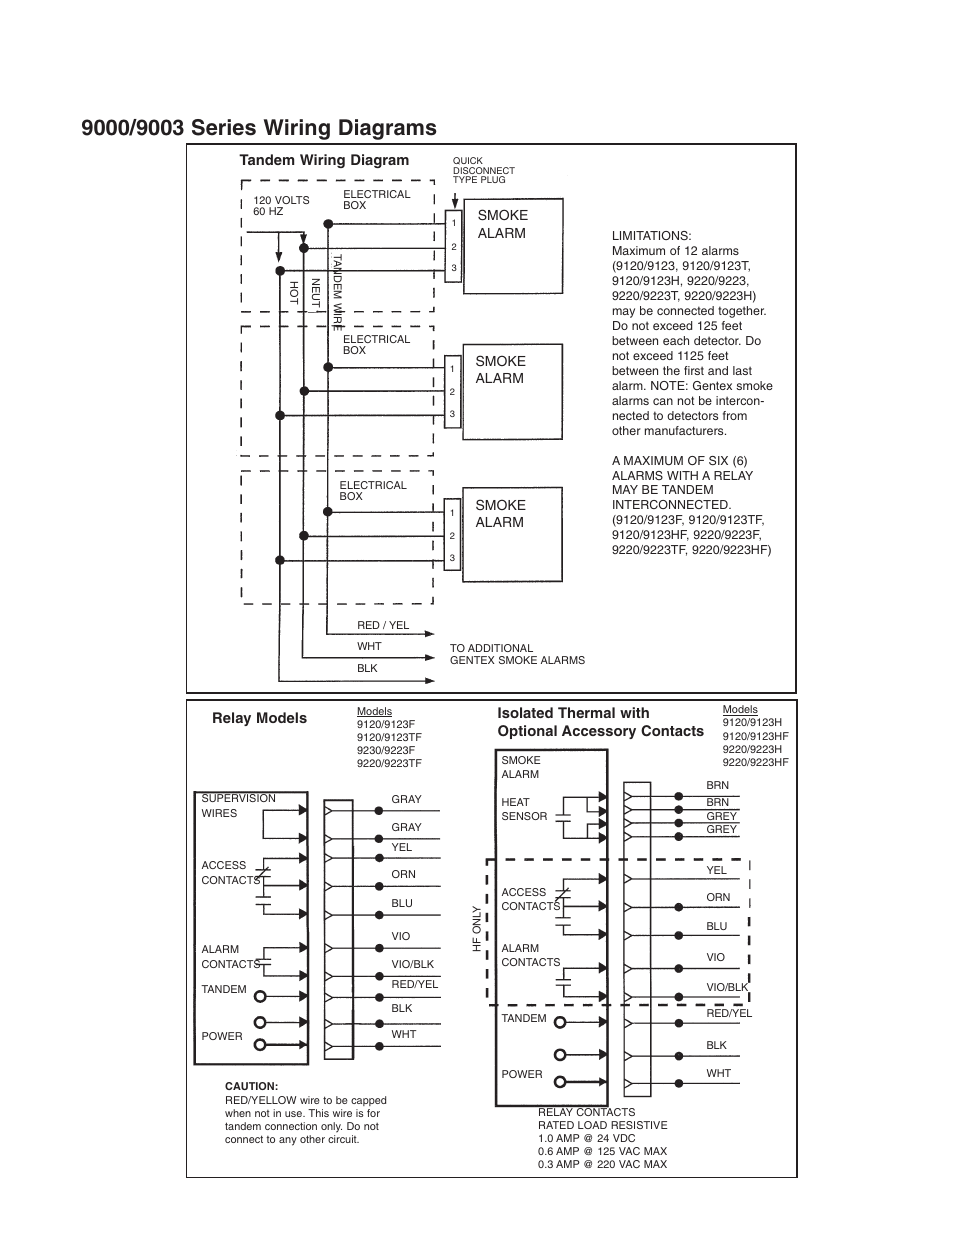 Smoke Alarm  Tandem Wiring Diagram Relay Models  Isolated Thermal With Optional Accessory